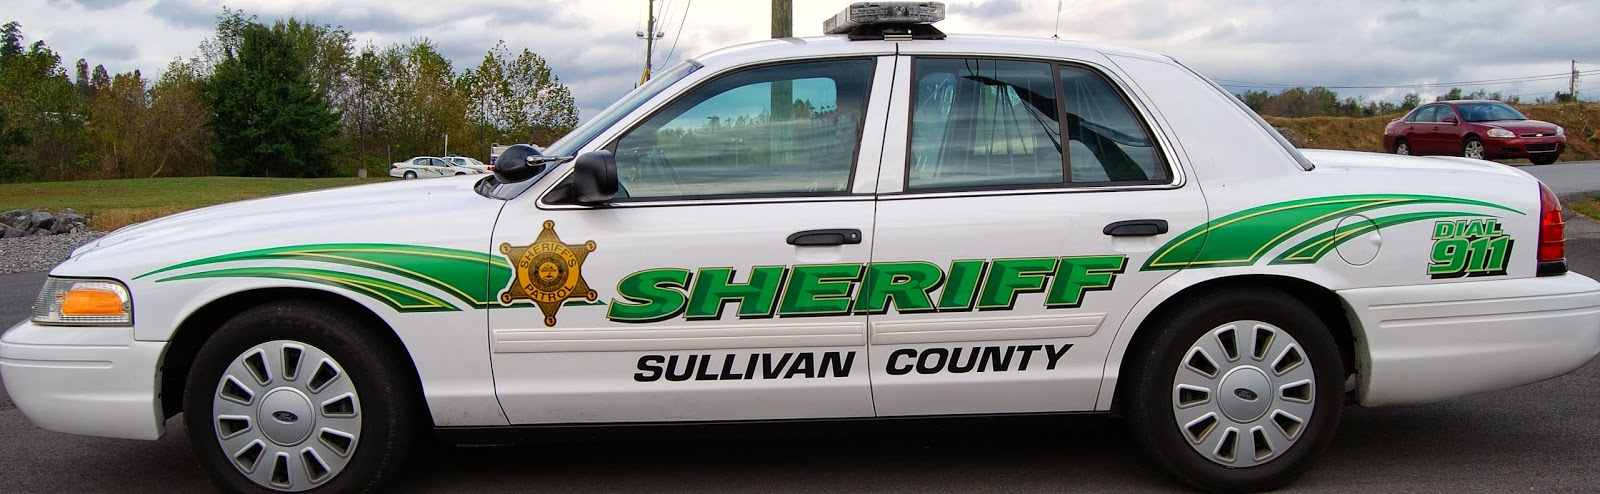 Sullivan County Sheriff's Office: May 2014